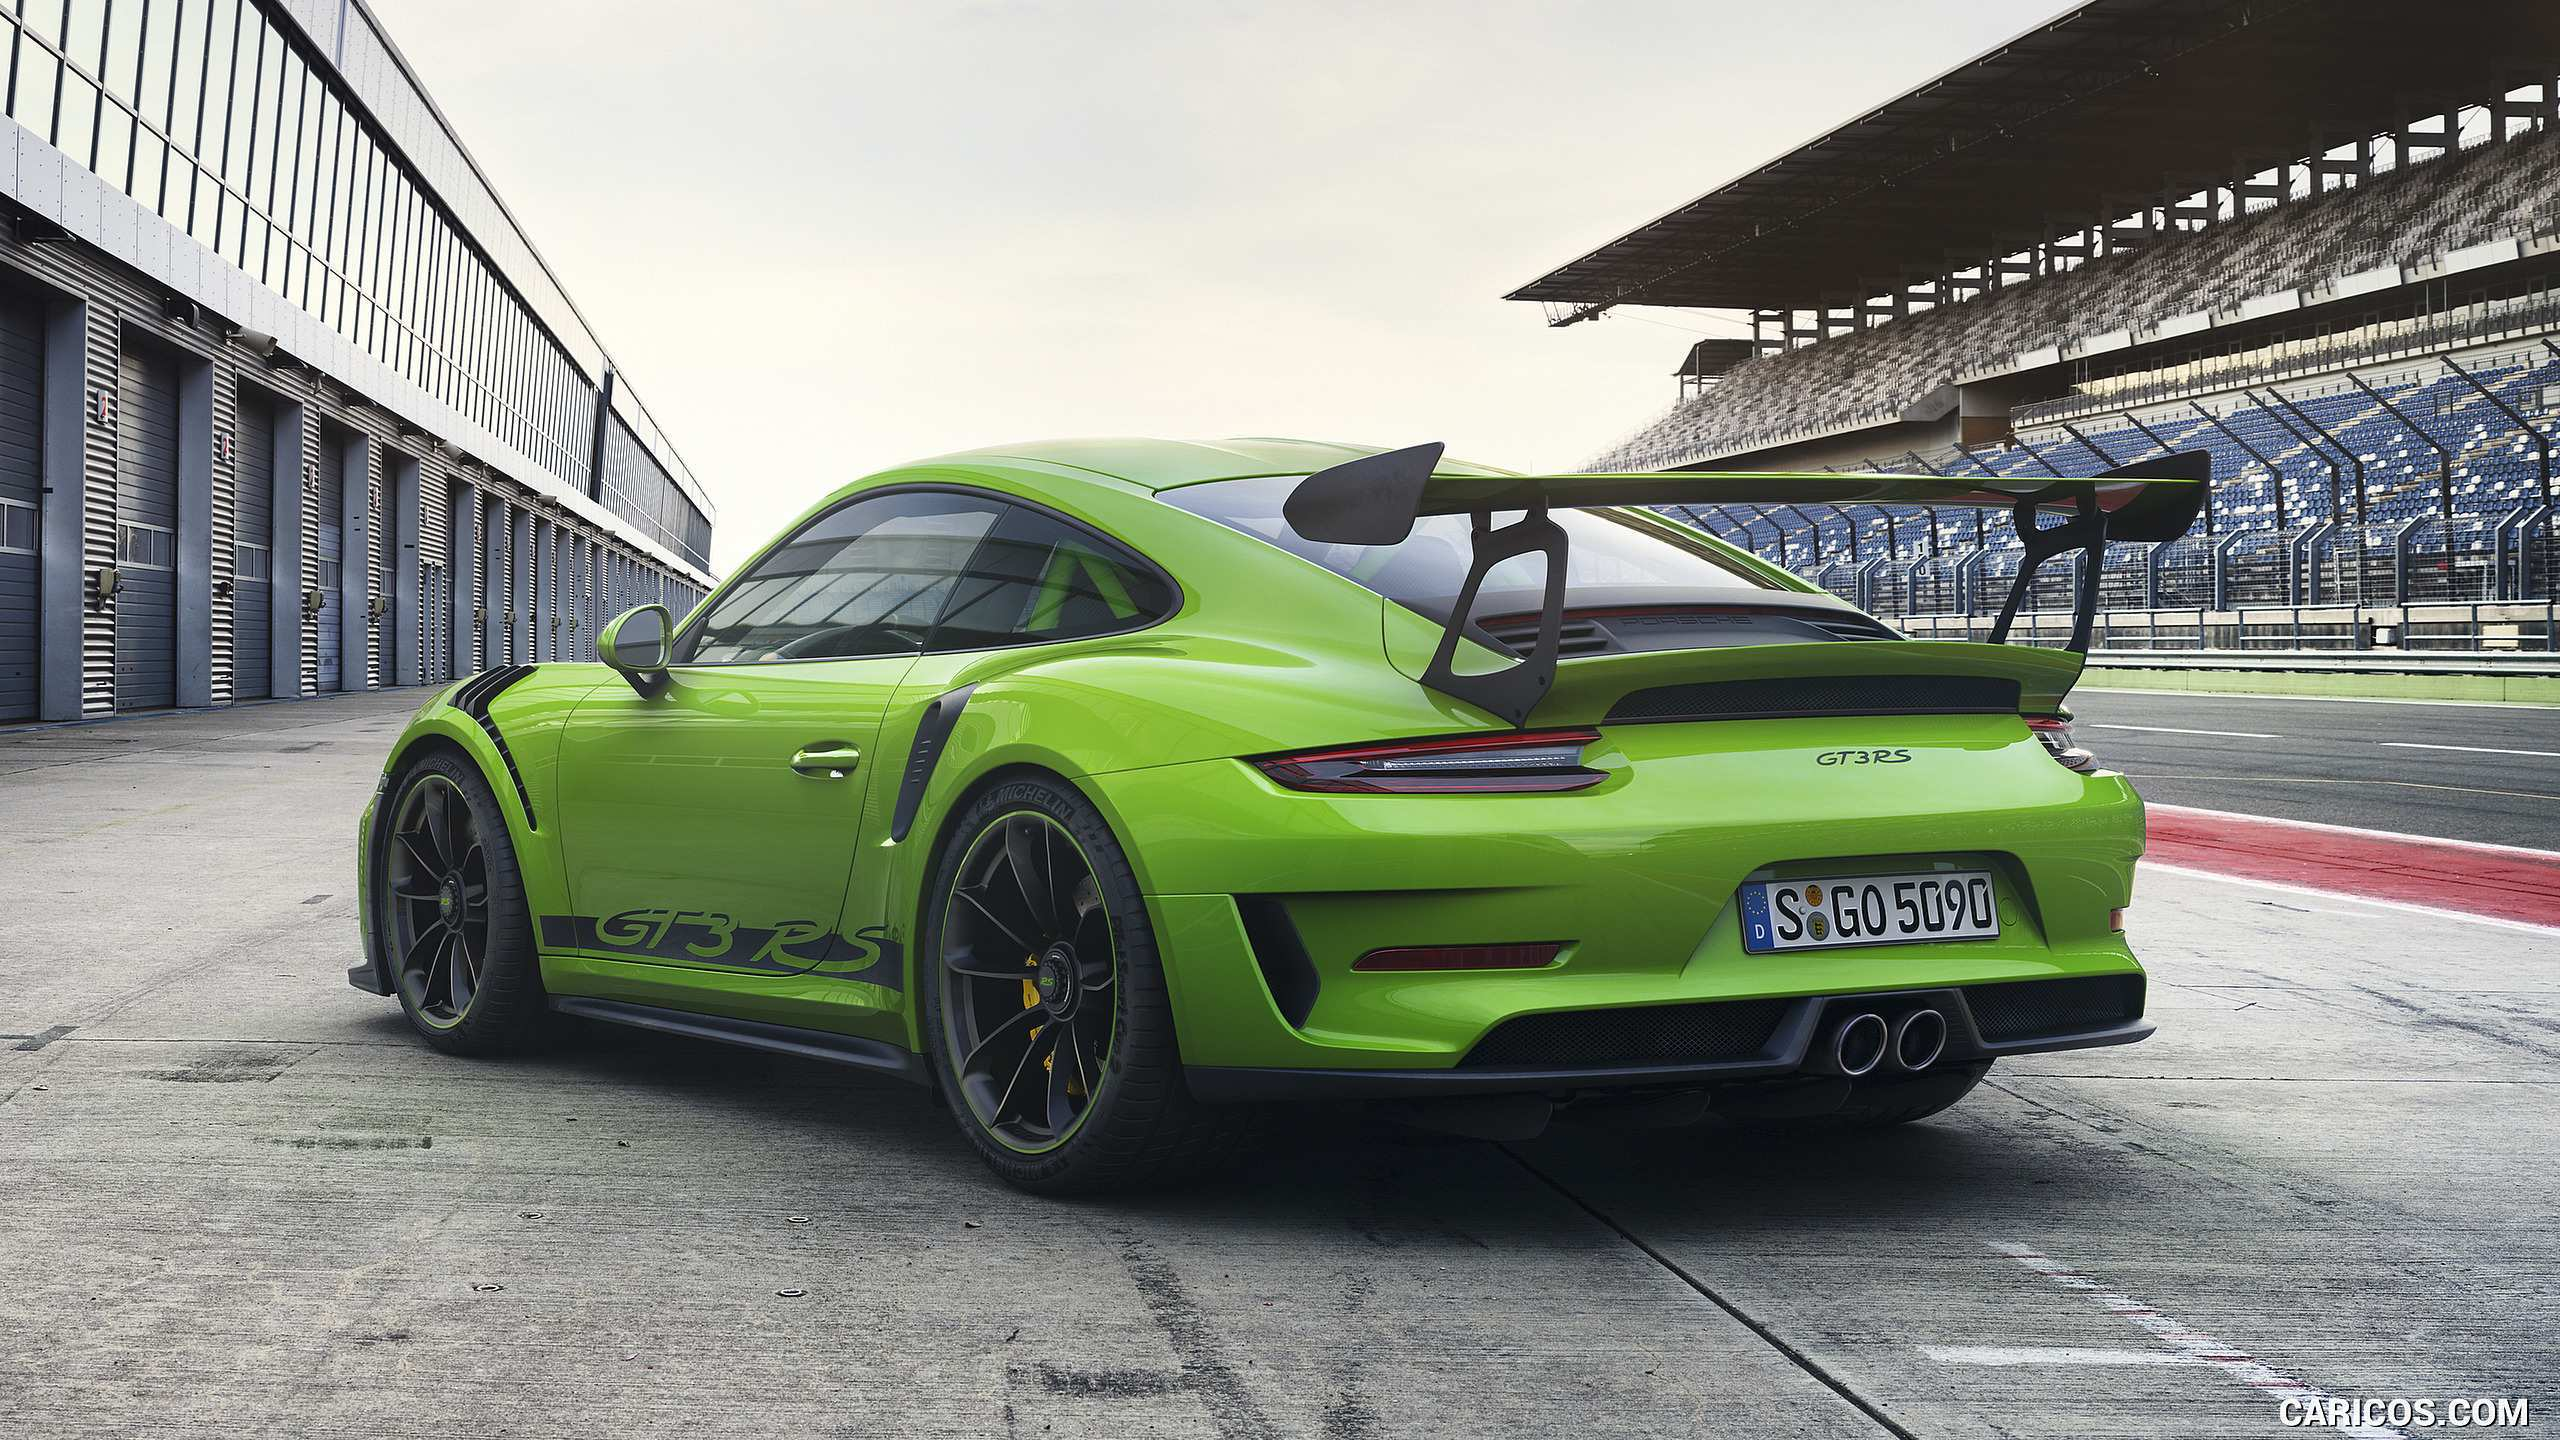 36 Great 2019 Porsche 911 Gt3 Rs Prices by 2019 Porsche 911 Gt3 Rs